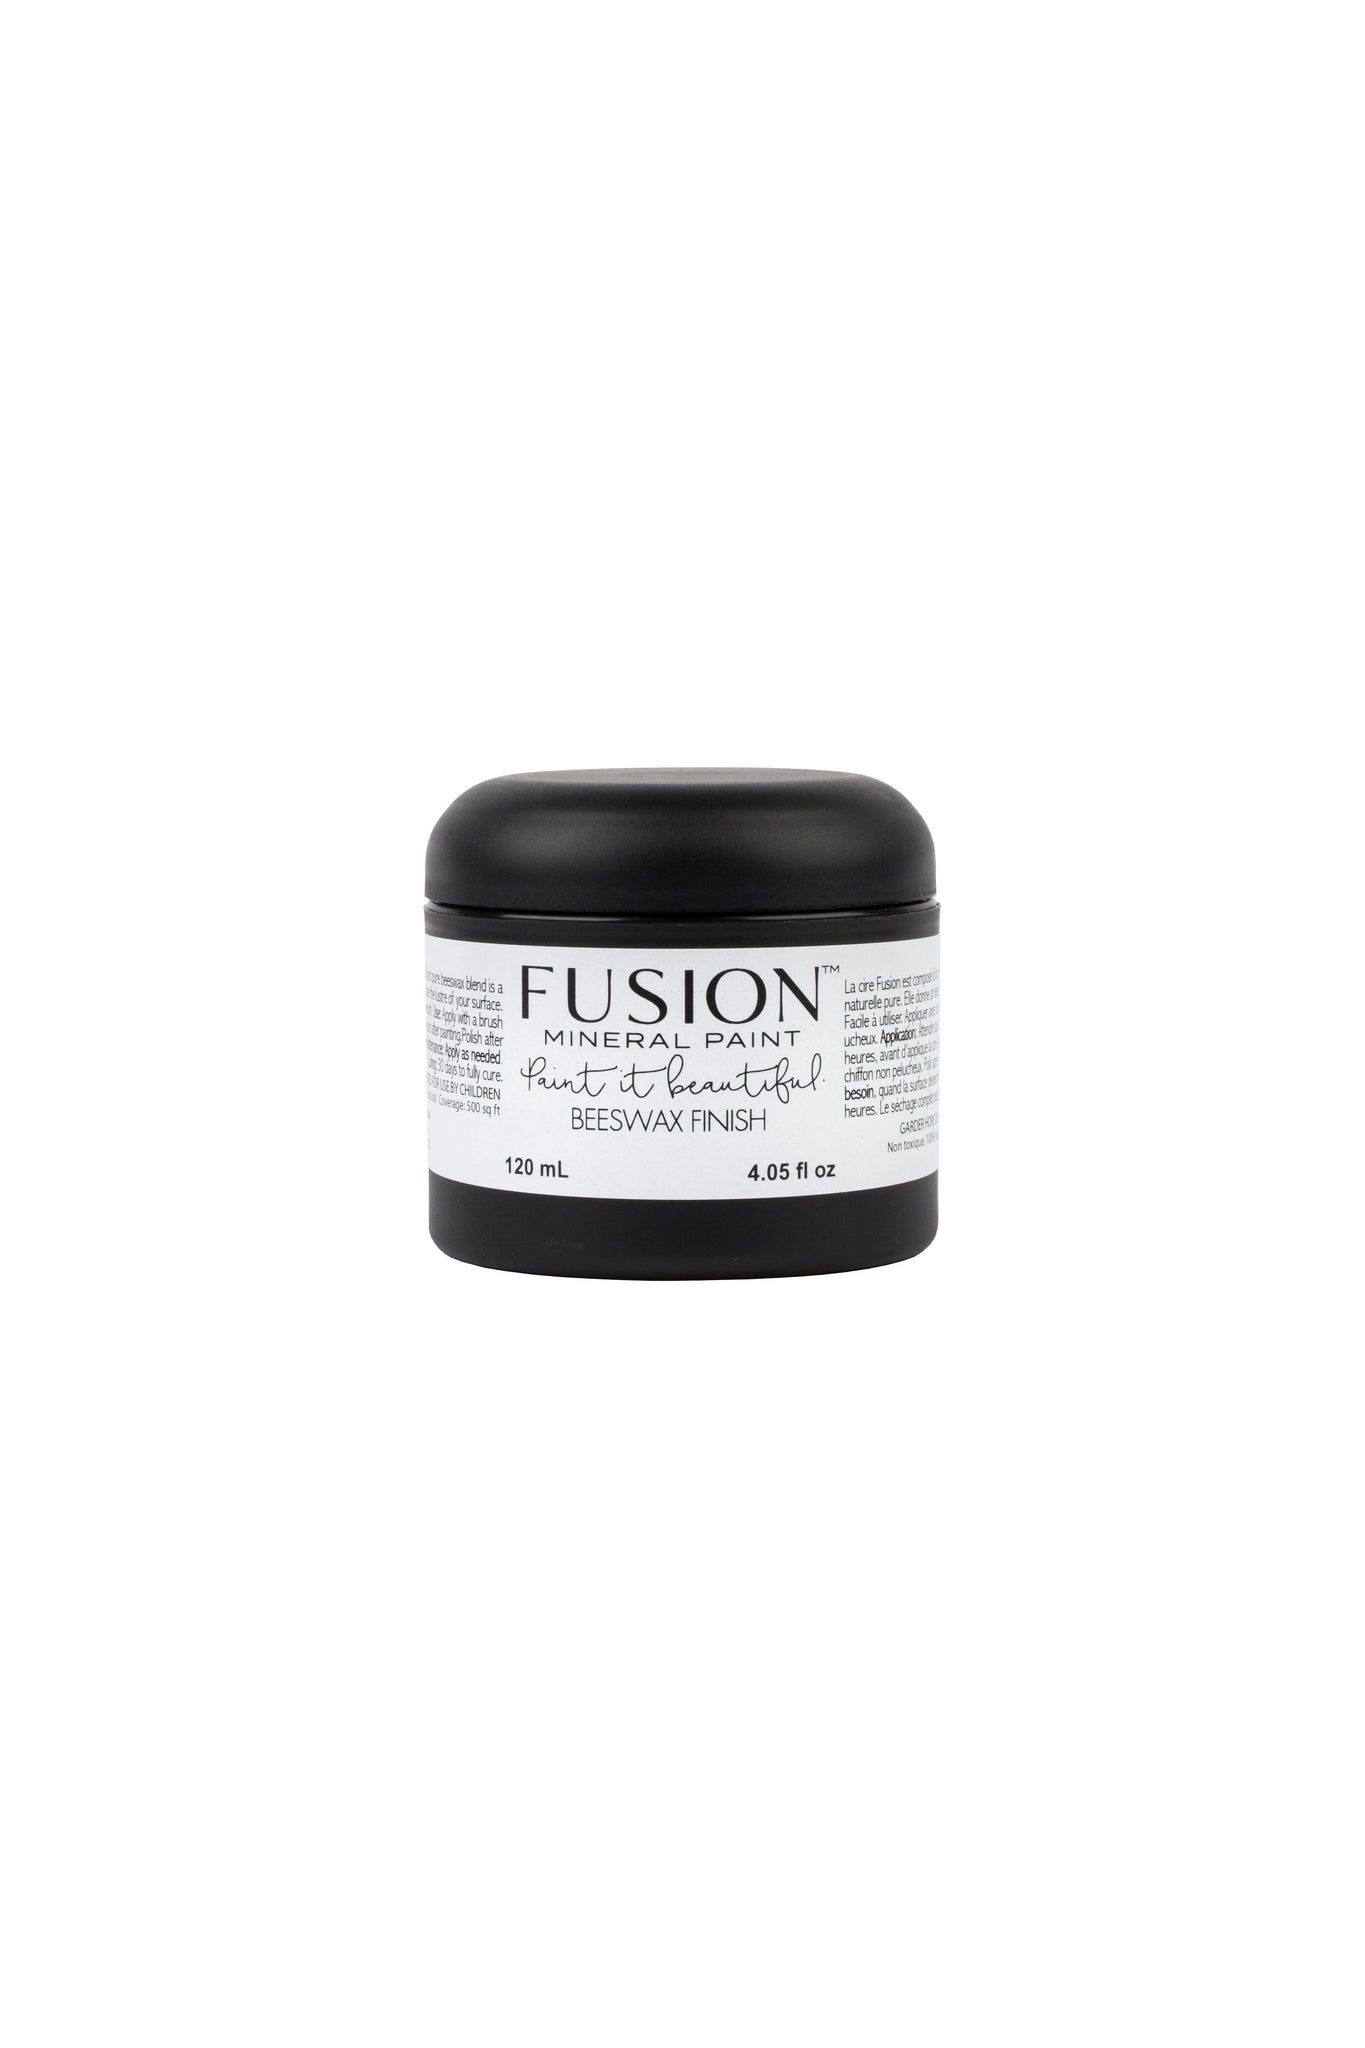 Pictured is a 120 mL container of Fusion Beeswax Finish. It is in a small black container with a twisting lid.